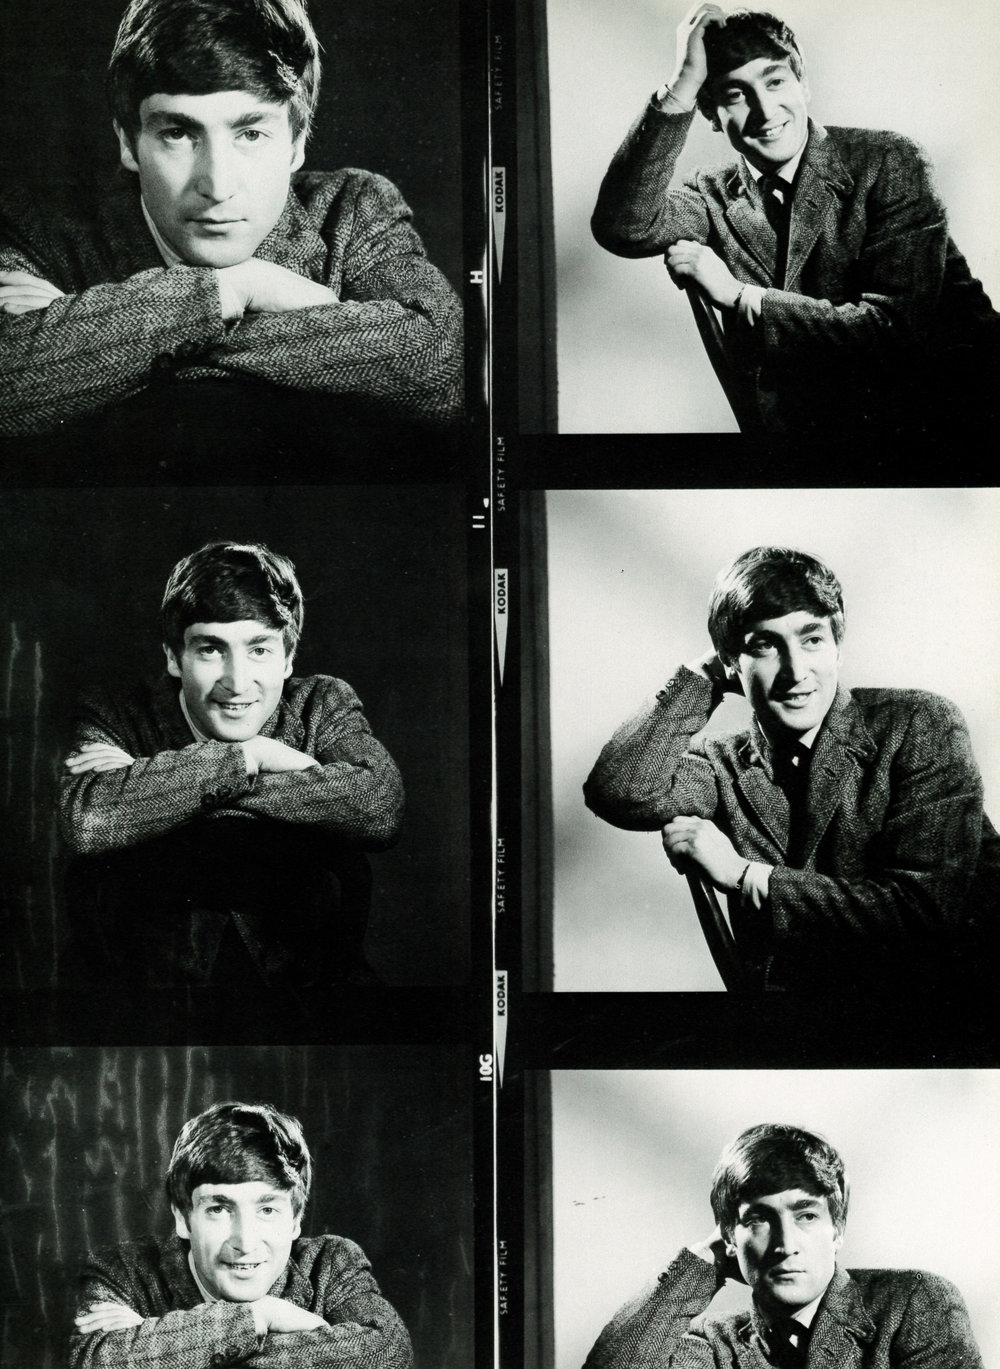 John Lennon 1963 - photos by Dezo Hoffman.